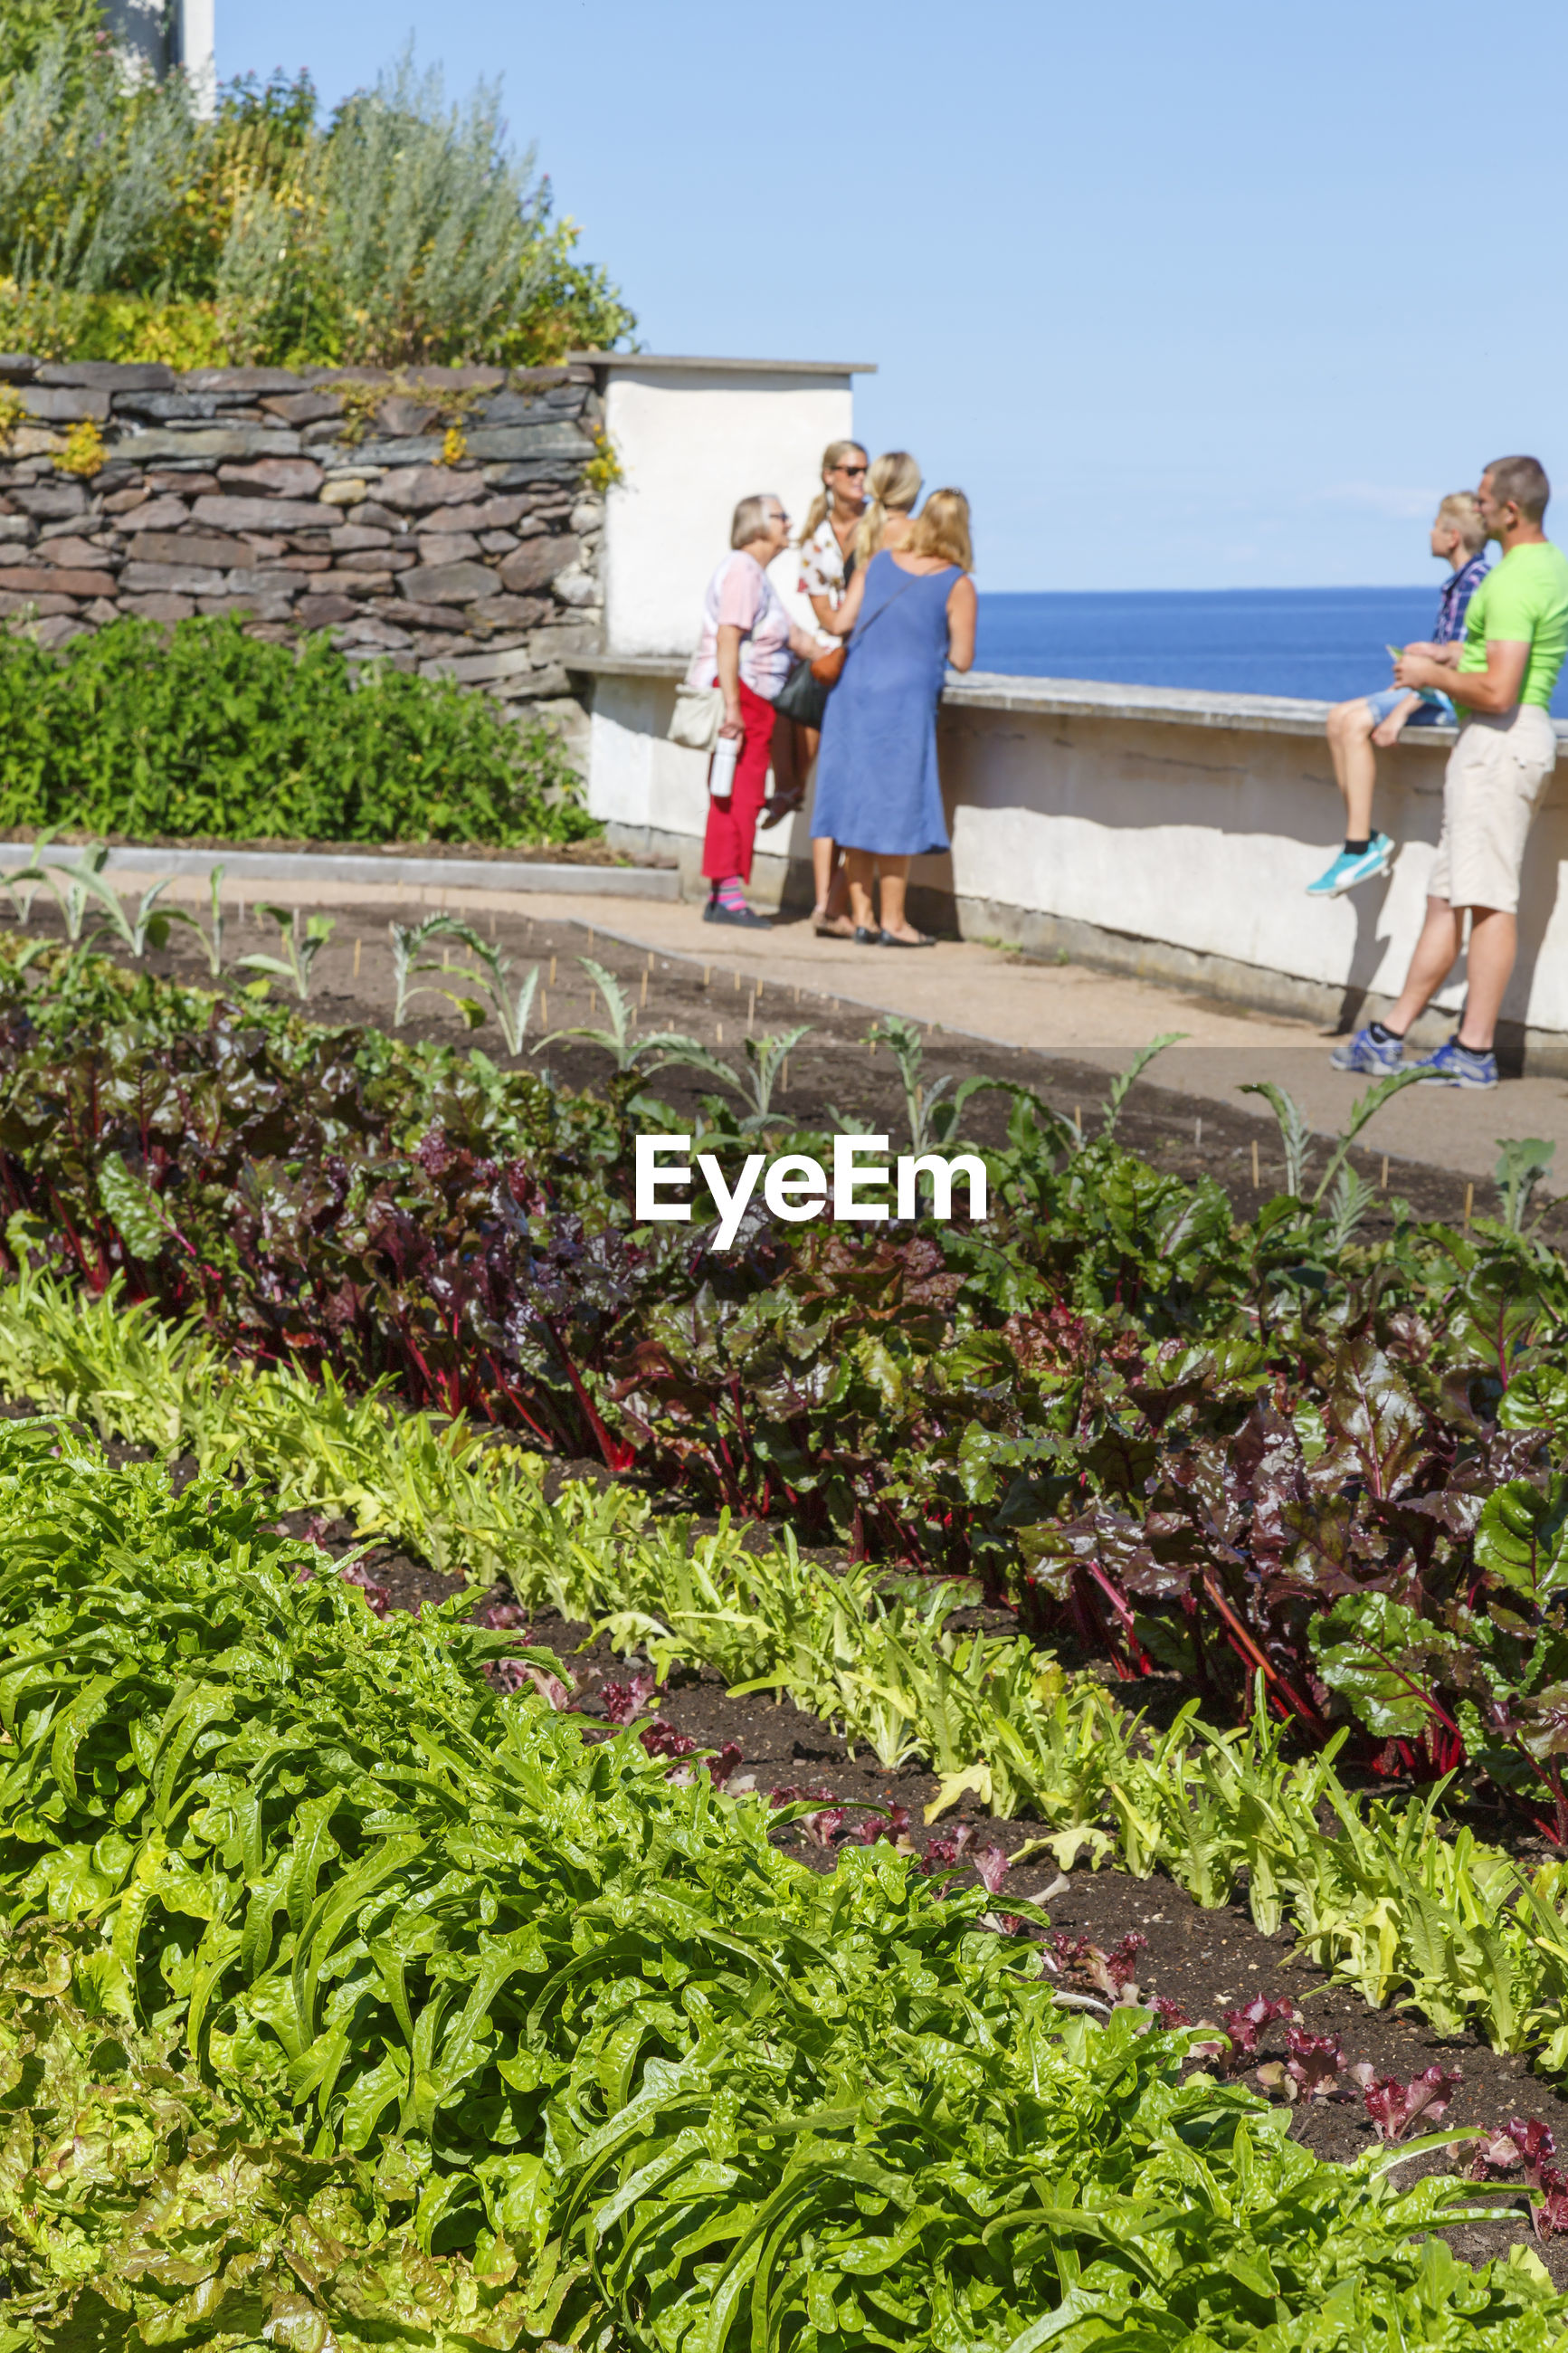 Vegetable garden with visitors in the summer